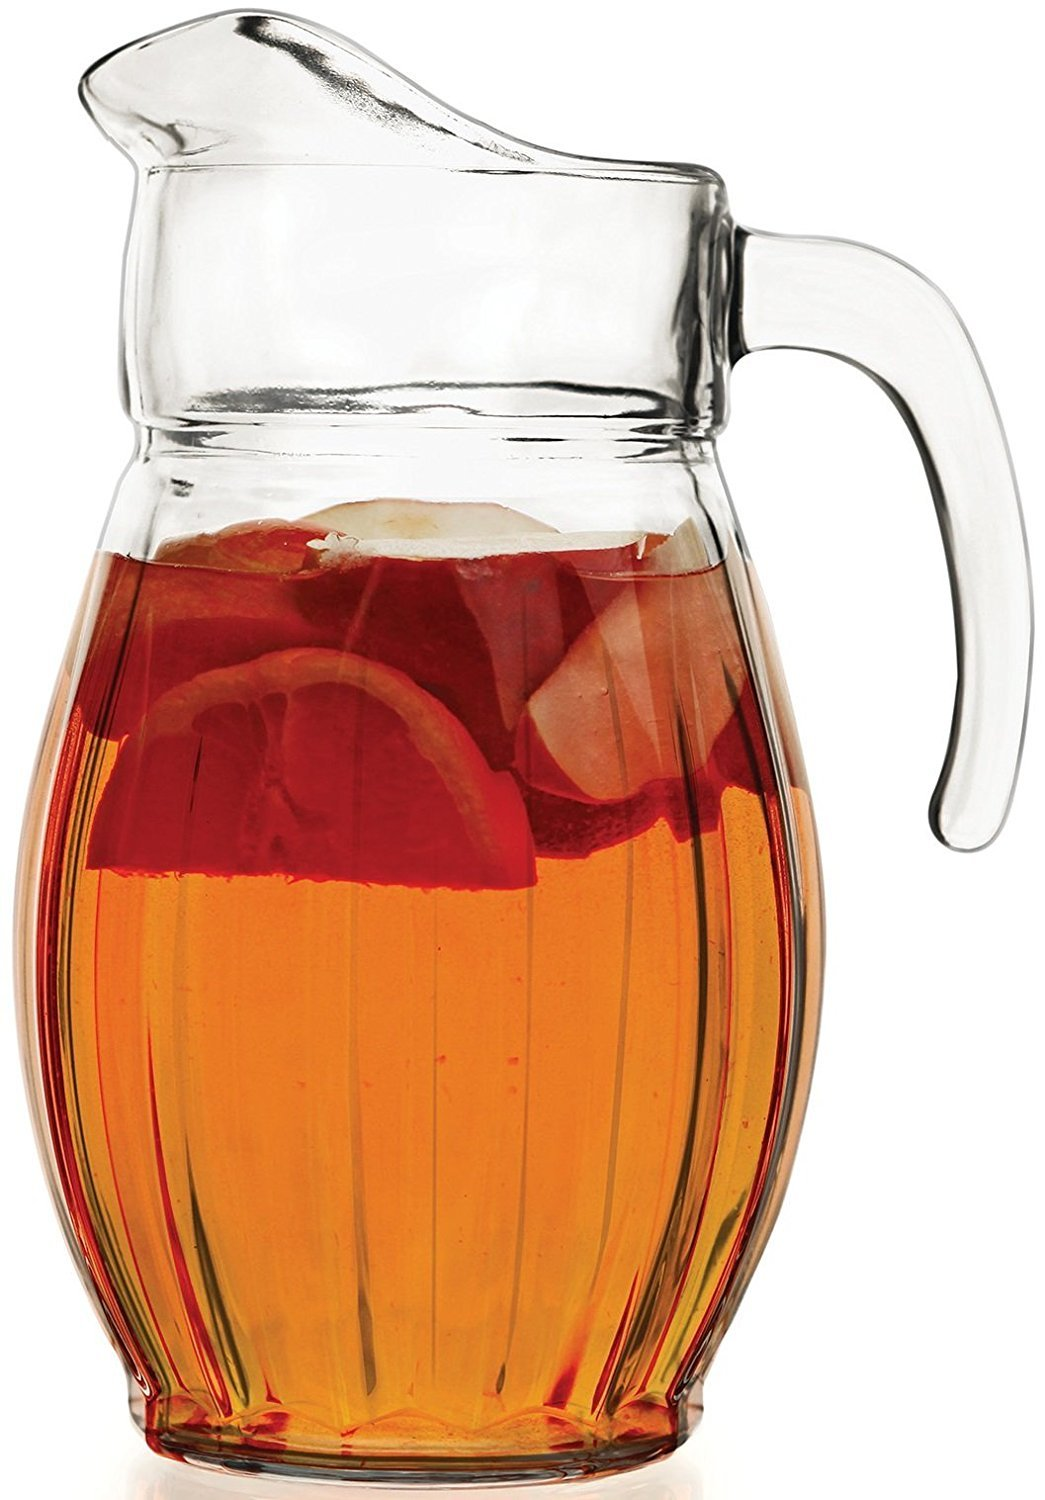 Circleware 66663 Cornado Glass Carafe Large 8 Cup Water Pitcher with Handle Drinking Dispenser Glassware for Beer, Wine and Kitchen & Home Decor Bar Dining Beverage Gifts, Lead Free, 66 oz,